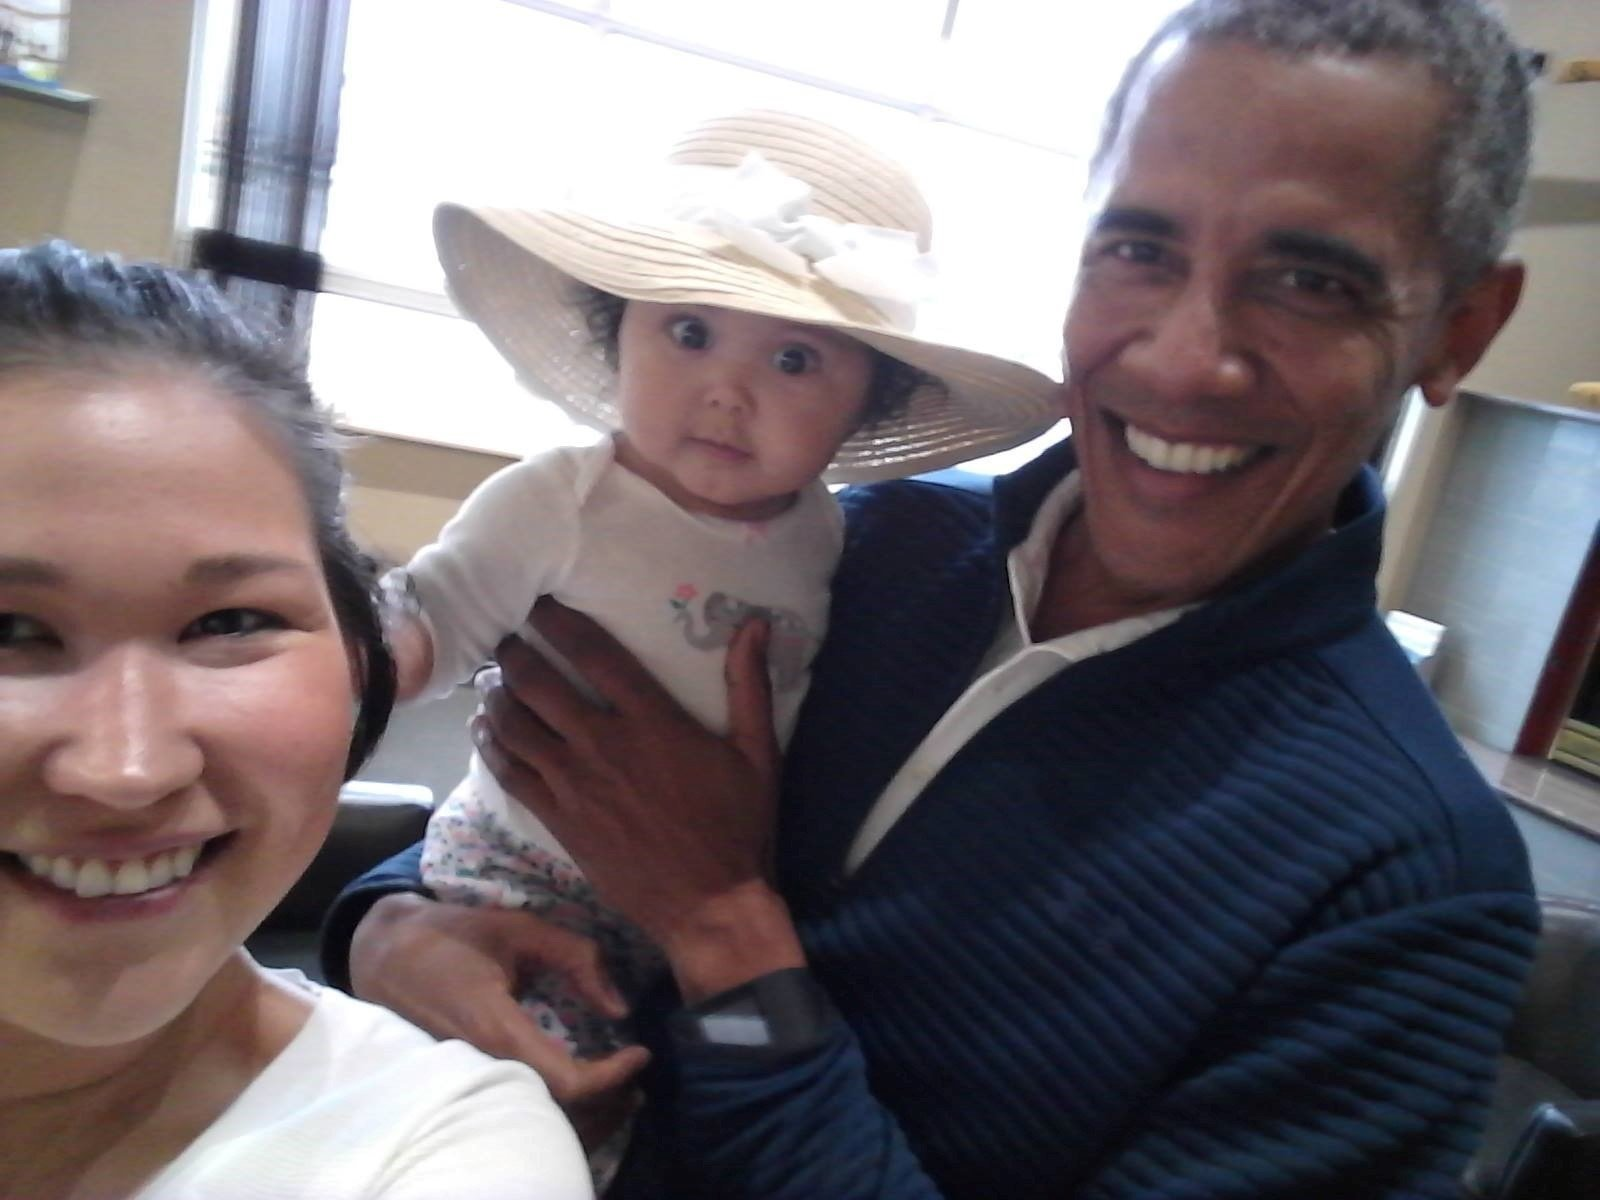 Former President Obama posed for photos with the baby during an encounter at Anchorage International Airport. (Jolene Jackinsky via CNN)